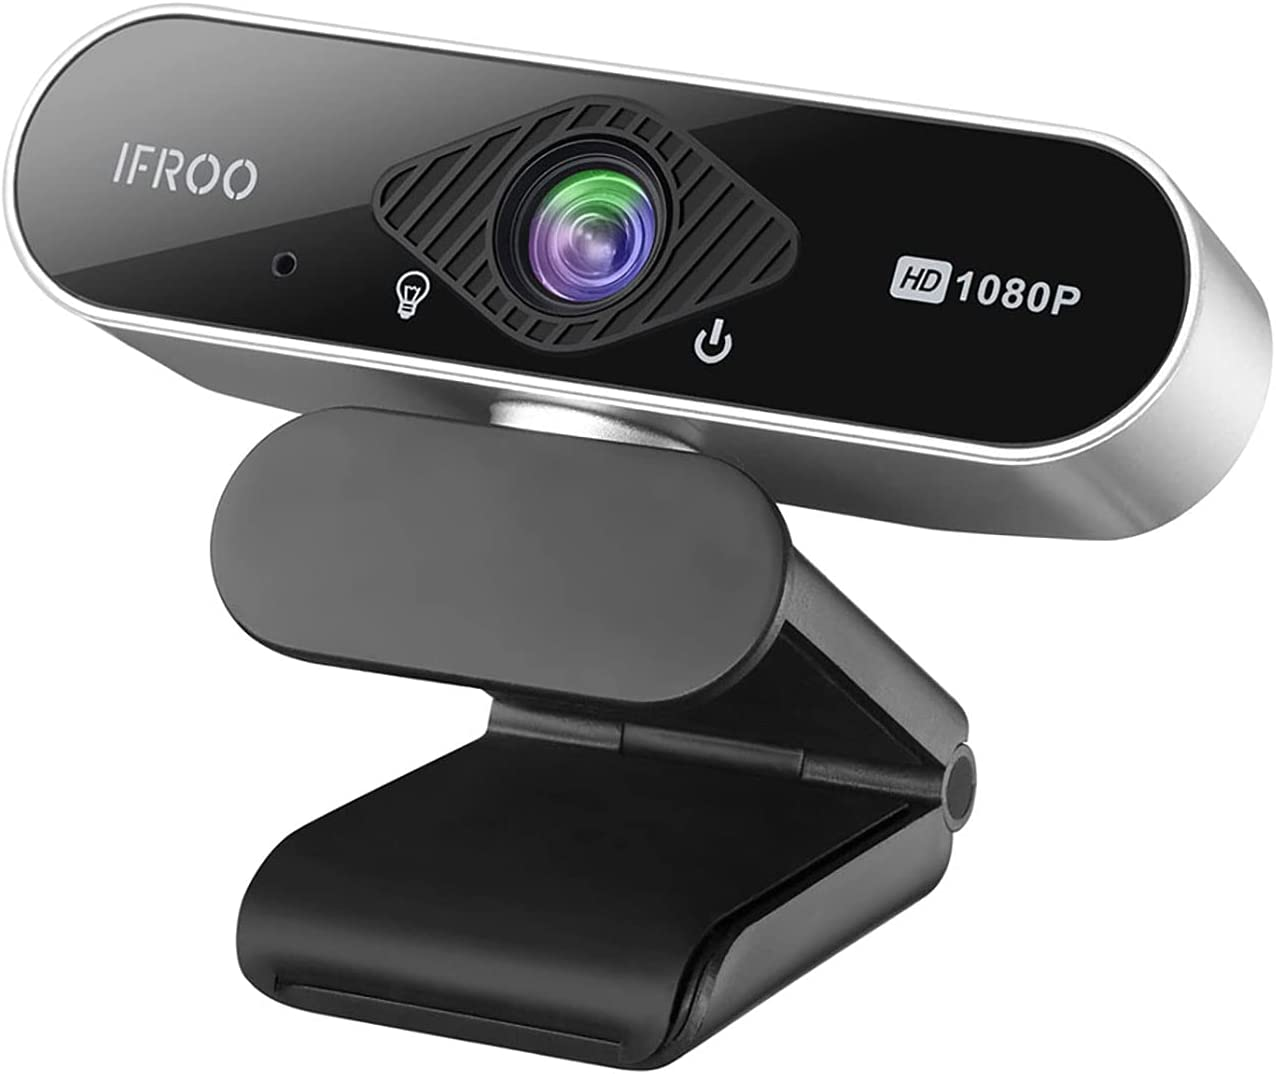 IFROO FHD 1080P Webcam with fisheye Microphone for Boston Mall Wide-Angle No Year-end annual account